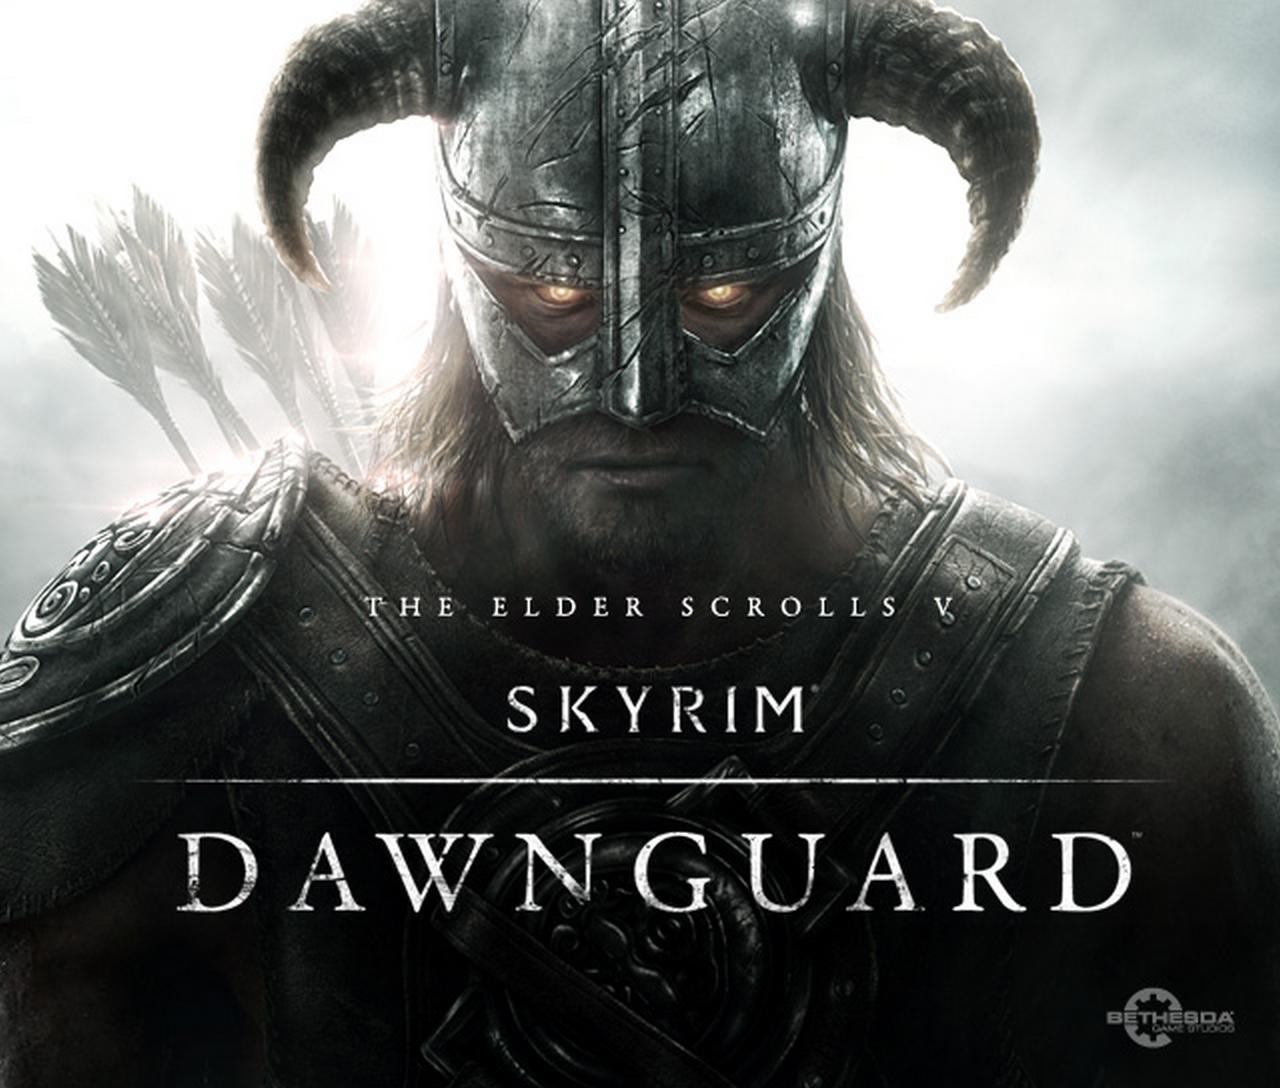 The Elder Scrolls V Skyrim – Dawnguard (Steam) +ПОДАРОК